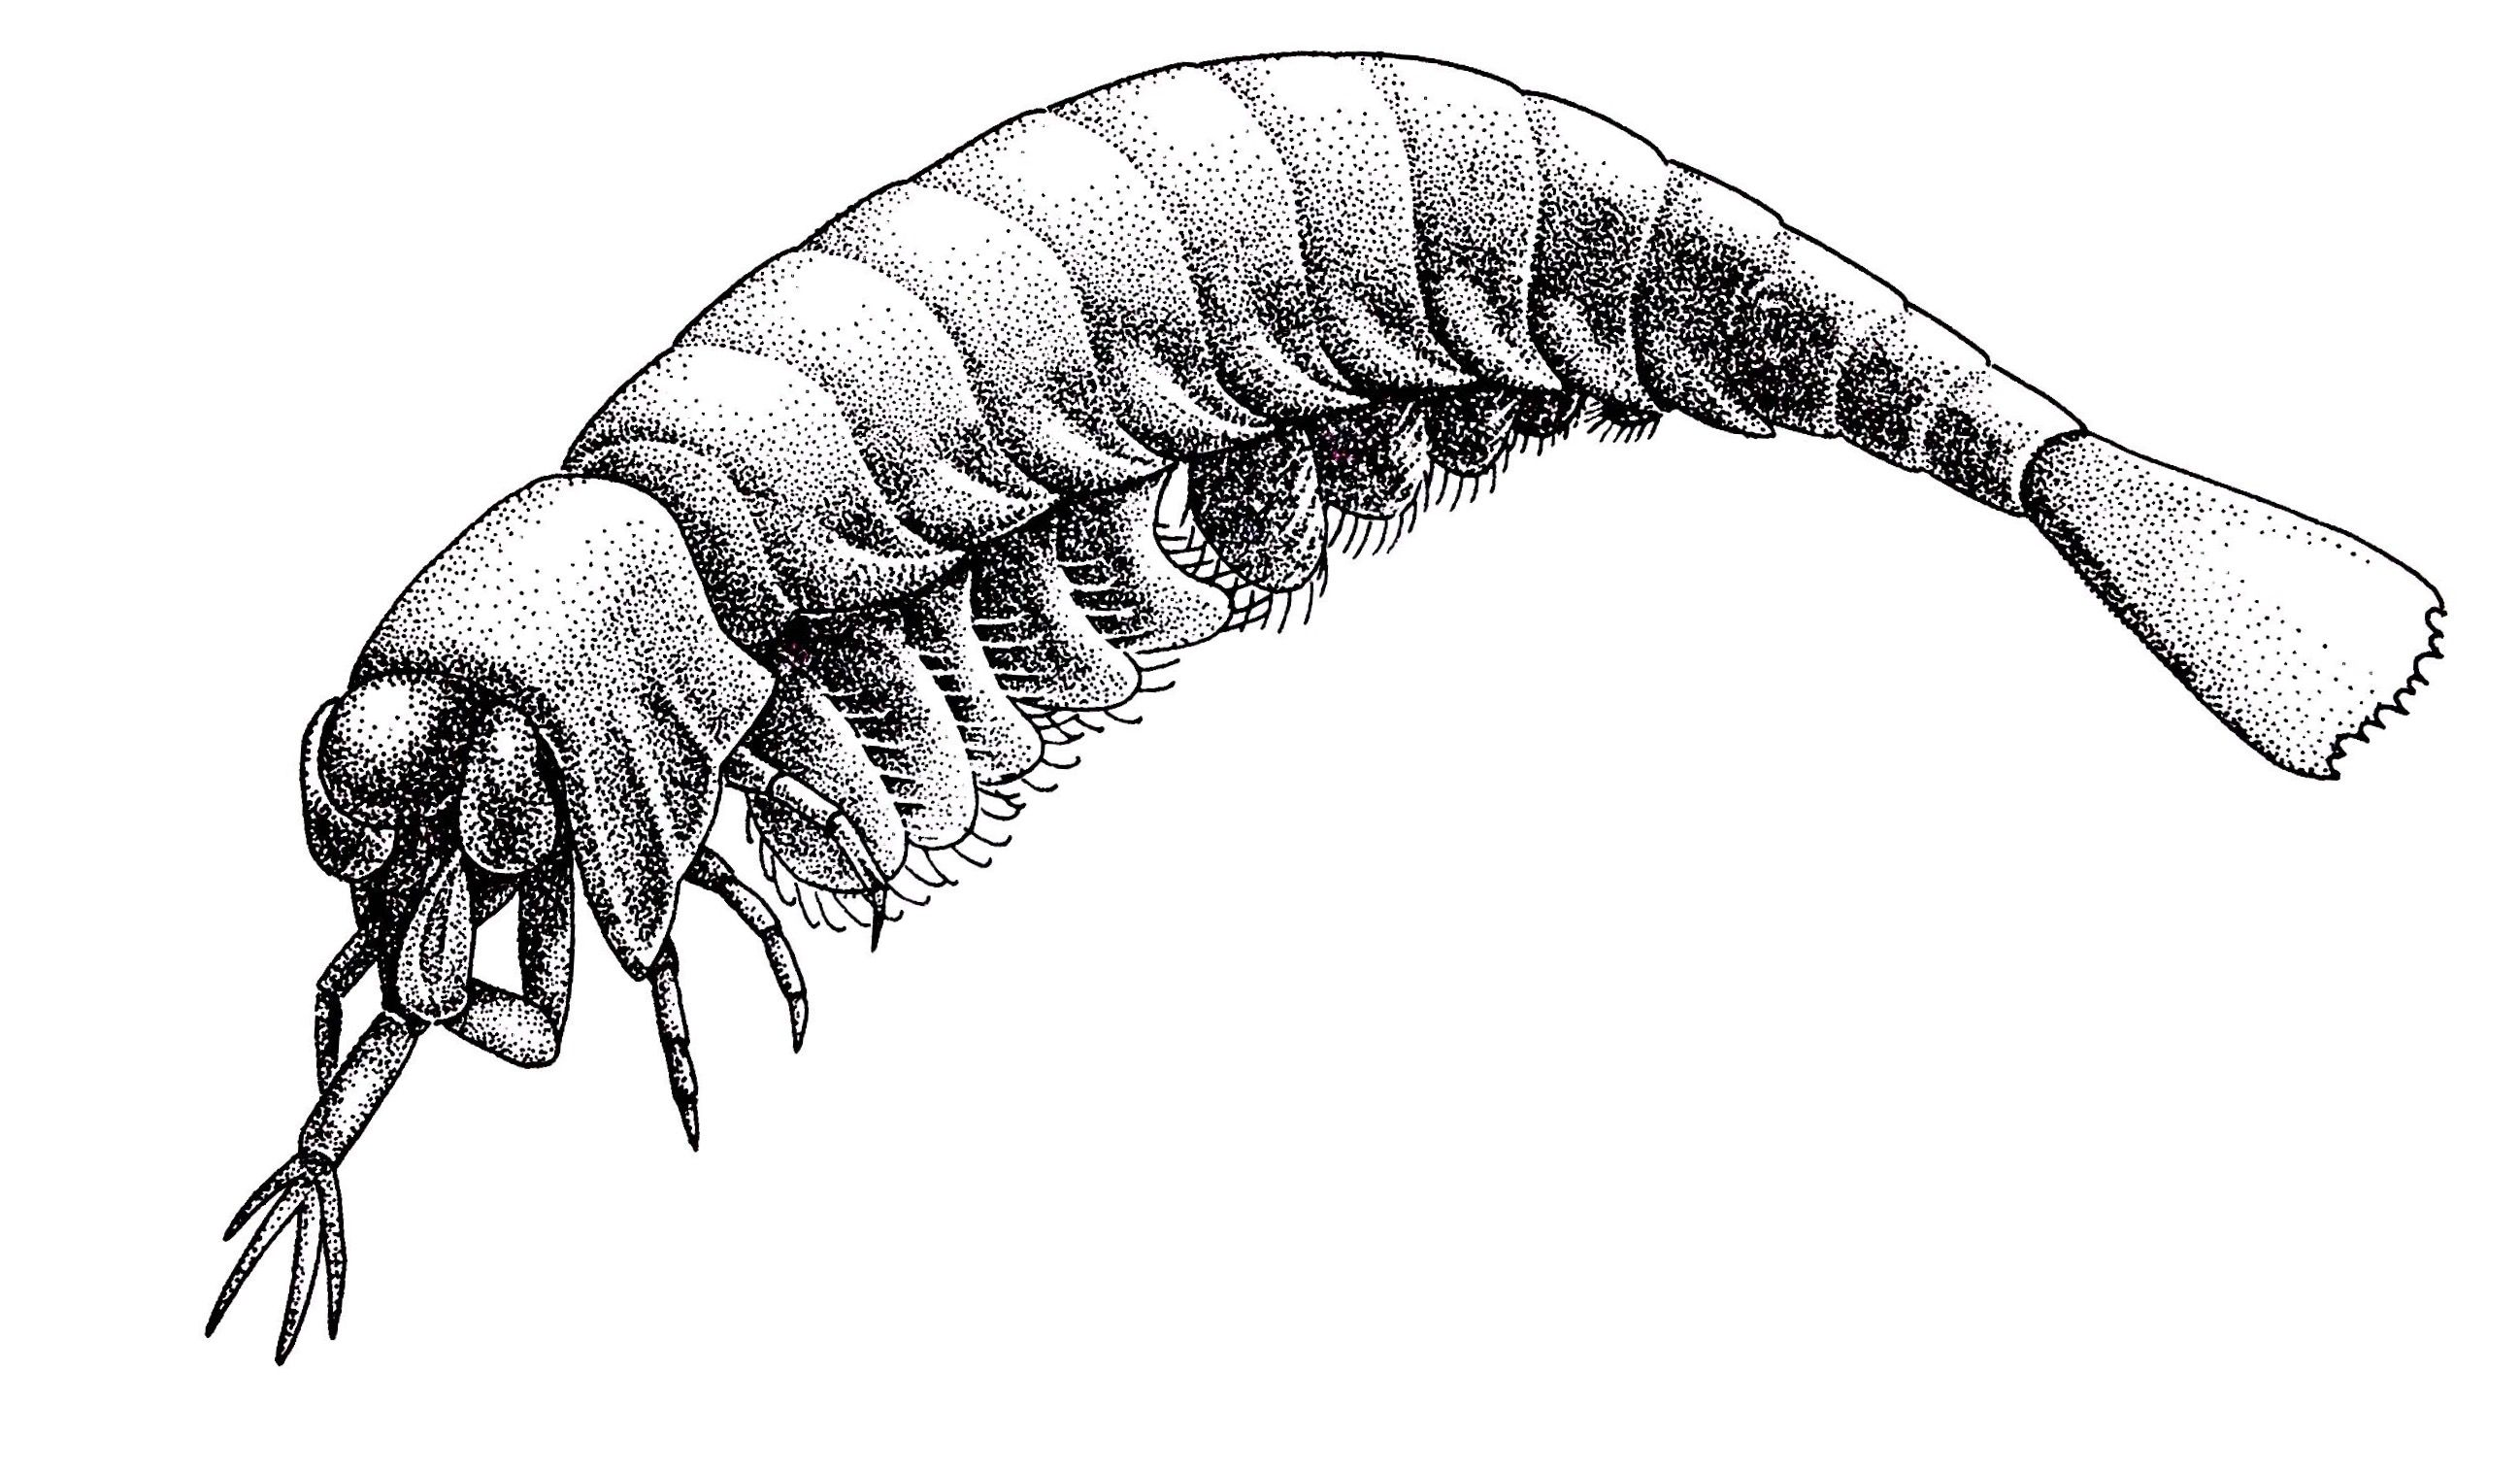 Yohoia, a tiny, extinct arthropod from the Burgess Shale